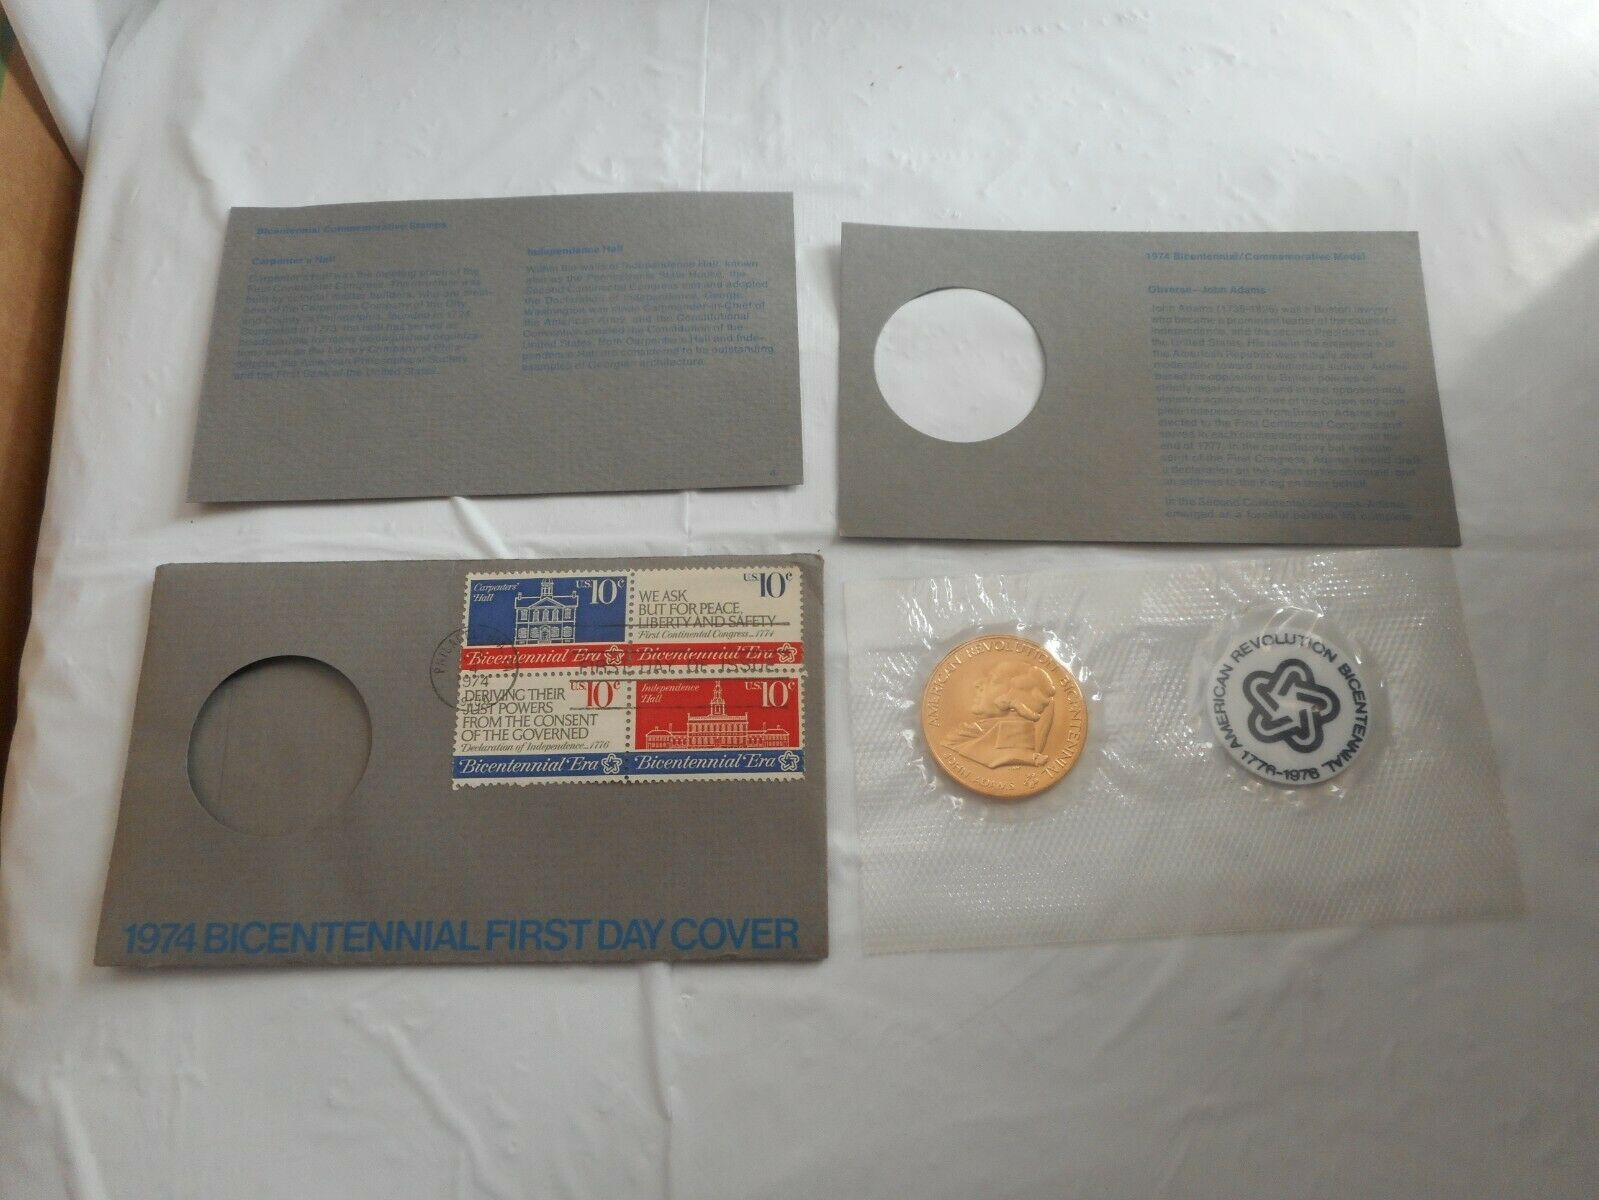 Primary image for 1974 JOHN ADAMS Bicentennial Commemorative Medal & First Day Cover Stamp